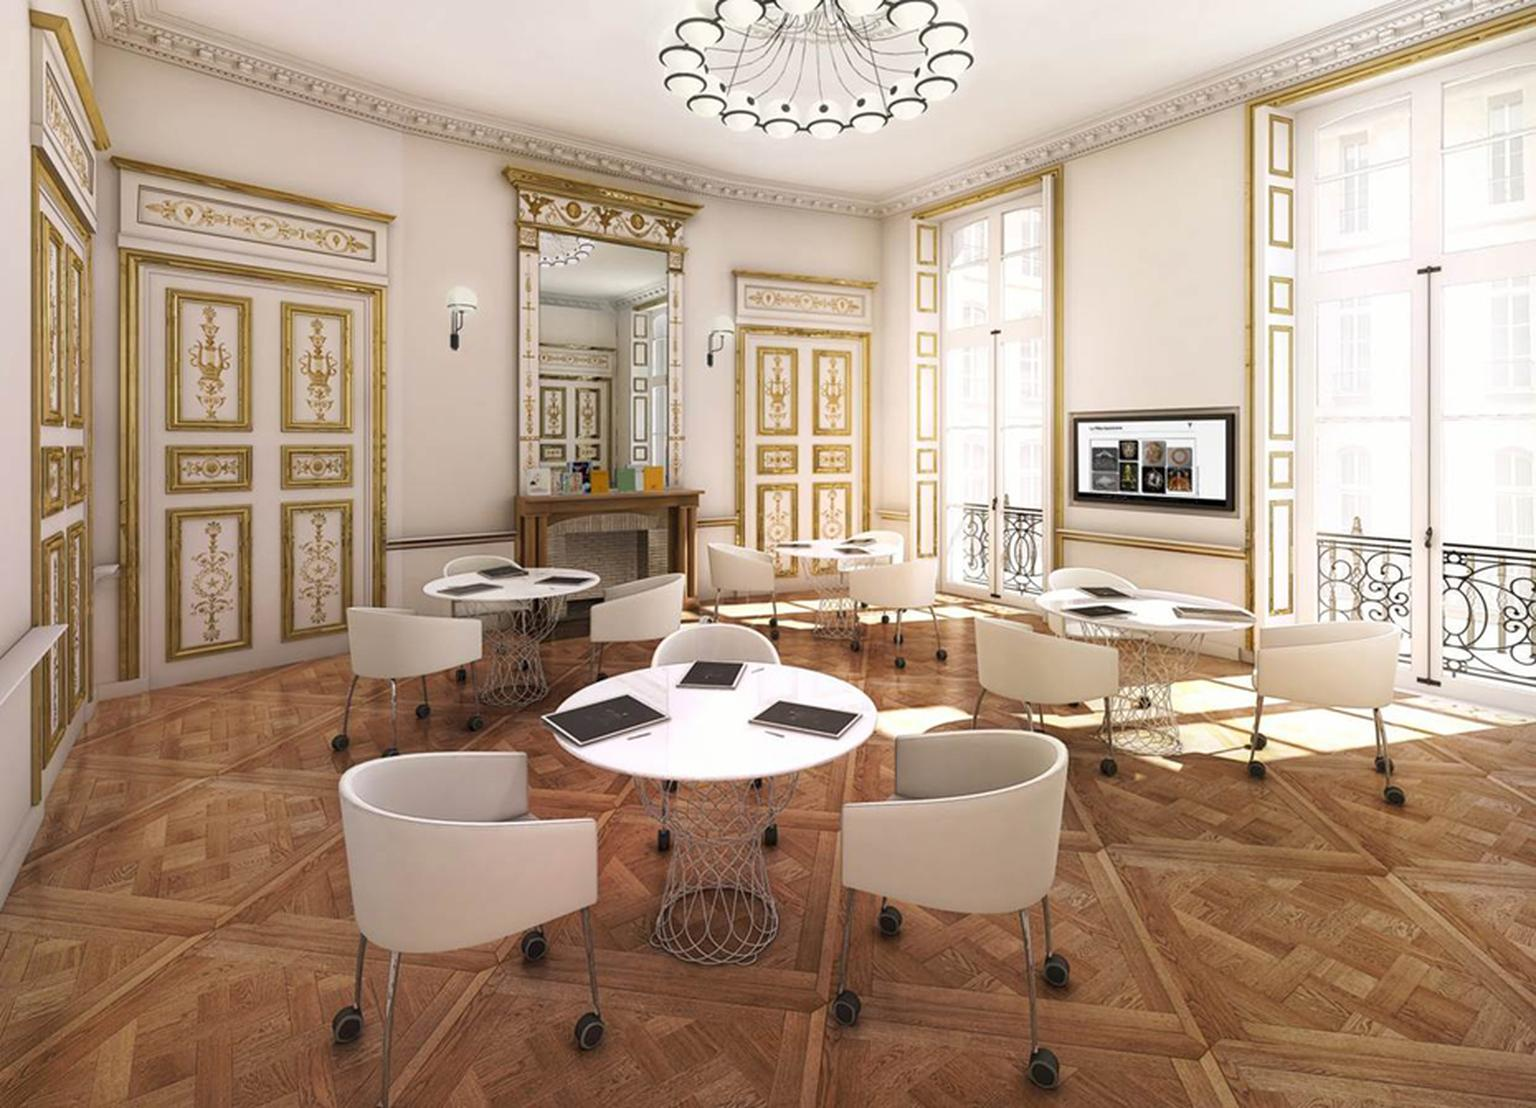 Two classrooms are dedicated to L'École Van Cleef & Arpels History of Art classes, with one of them housed in an 18th century salon. © Studios d'architecture Ory & Associe´s.